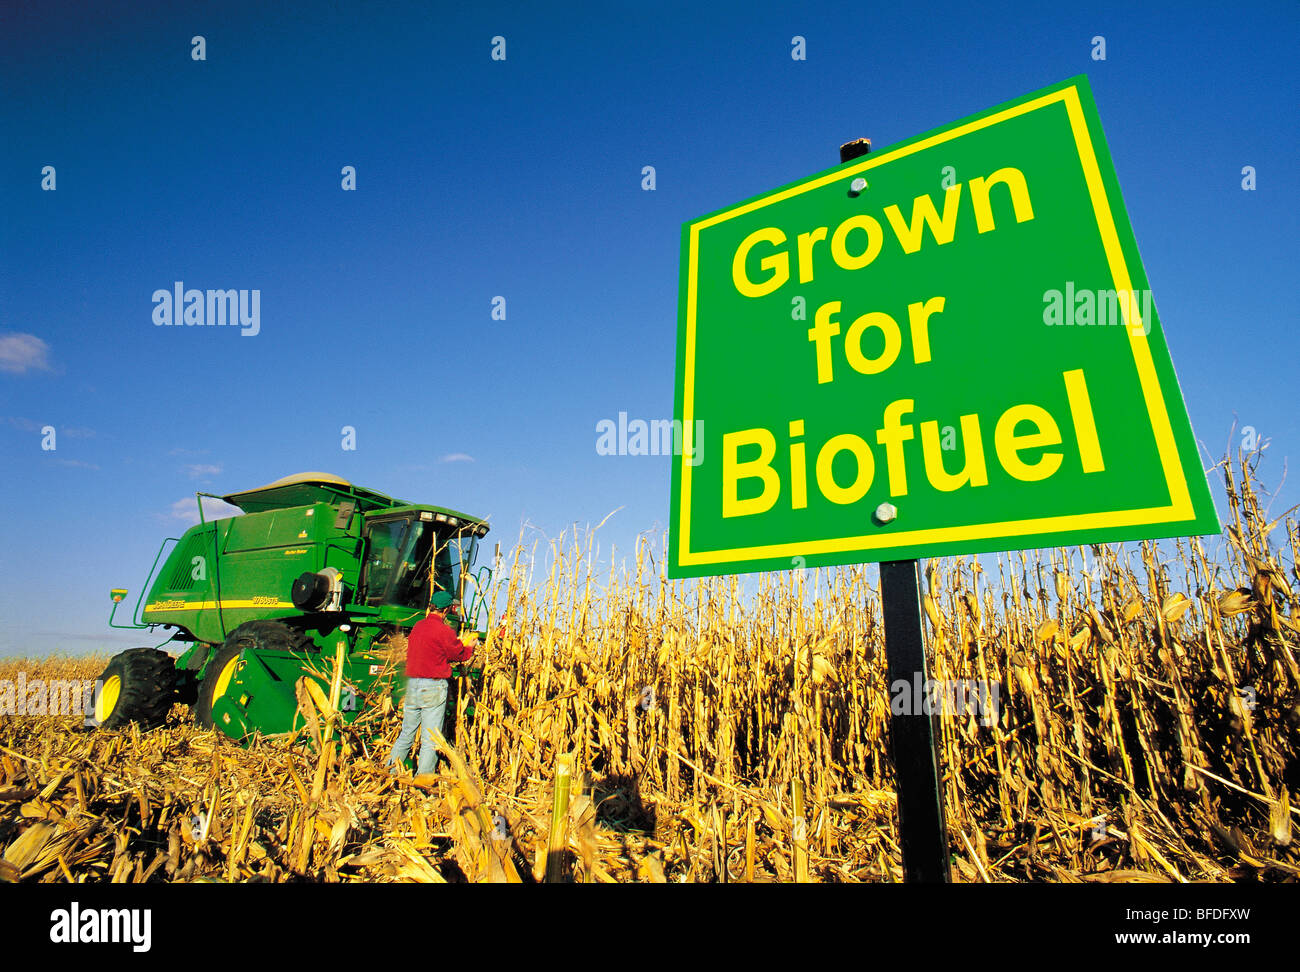 A farmer checks his feed corn crop being harvested for biofuel, near Carey, Manitoba, Canada - Stock Image